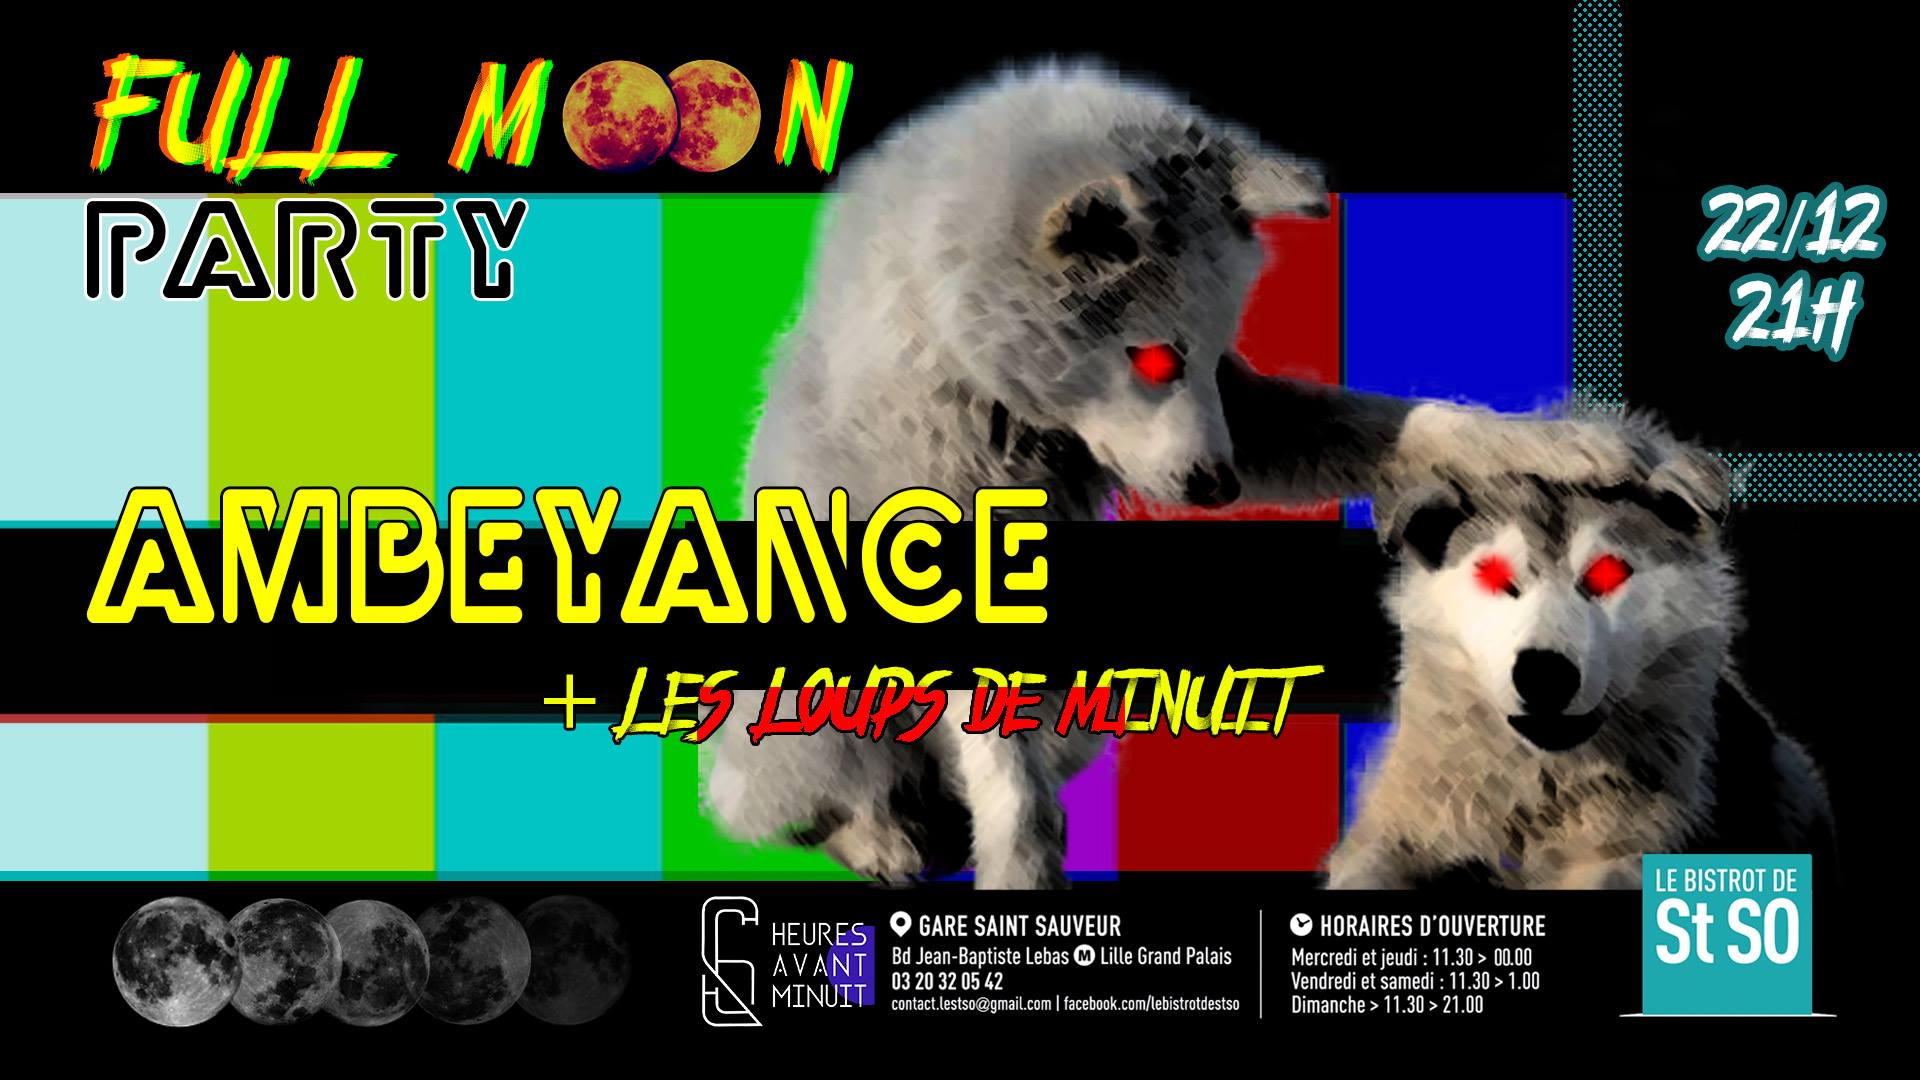 Full Moon Party – Ambeyance + Les Loups de Minuit